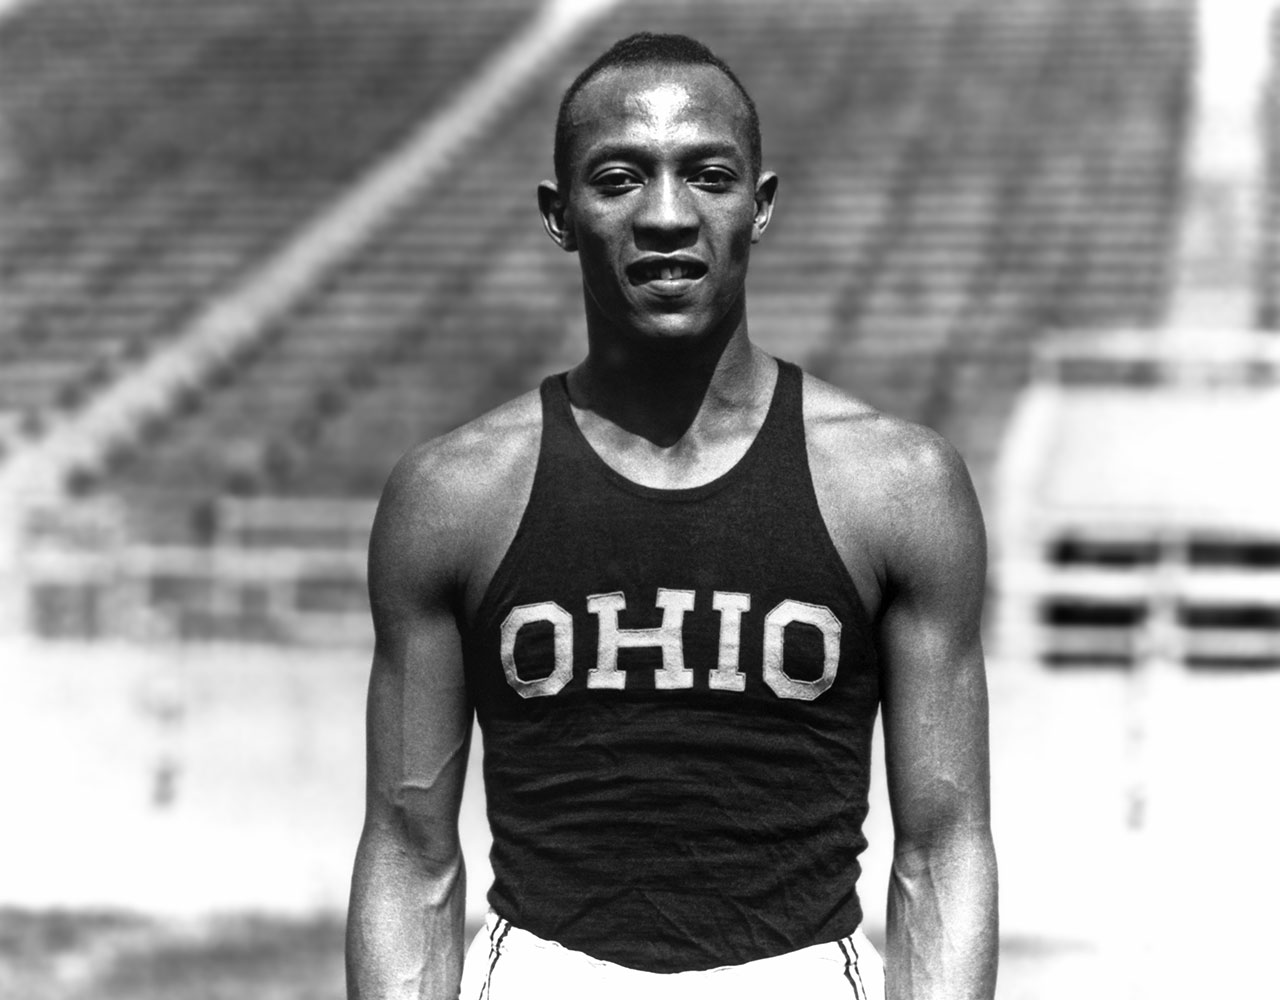 an introduction to the life of jesse owens Describes the life of track-and-field athlete jesse owens, from his childhood in alabama and his family's move to cleveland to his athletic career which culminated in.